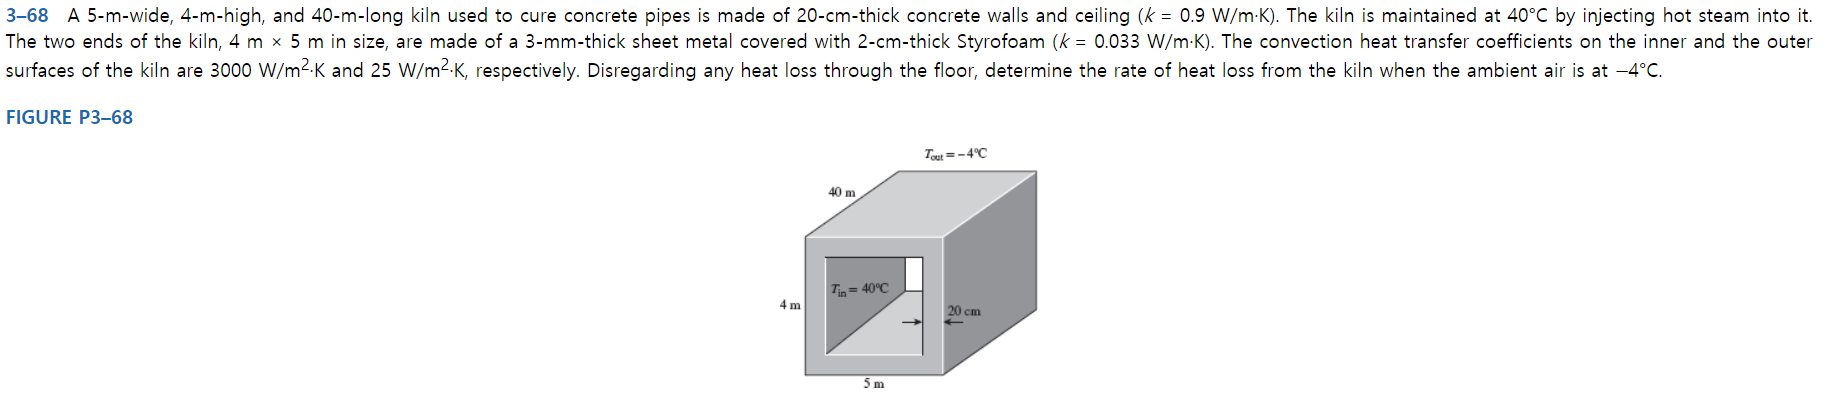 3-68 A 5-m-wide, 4-m-high, and 40-m-long kiln used to cure concrete pipes is made of 20-cm-thick concrete walls and ceiling (k = 0.9 W/m-K). The kiln is maintained at 40°C by injecting hot steam into it. The two ends of the kiln, 4 m x 5 m in size, are made of a 3-mm-thick sheet metal covered with 2-cm-thick Styrofoam (k = 0.033 W/m K). The convection heat transfer coefficients on the inner and the outer surfaces of the kiln are 3000 W/m2-K and 25 W/m2-K, respectively. Disregarding any heat loss through the floor, determine the rate of heat loss from the kiln when the ambient air is at -4°C. FIGURE P3-68 Tout-4°C 40 m Tin=40°C 4 m 20 cm 5 m